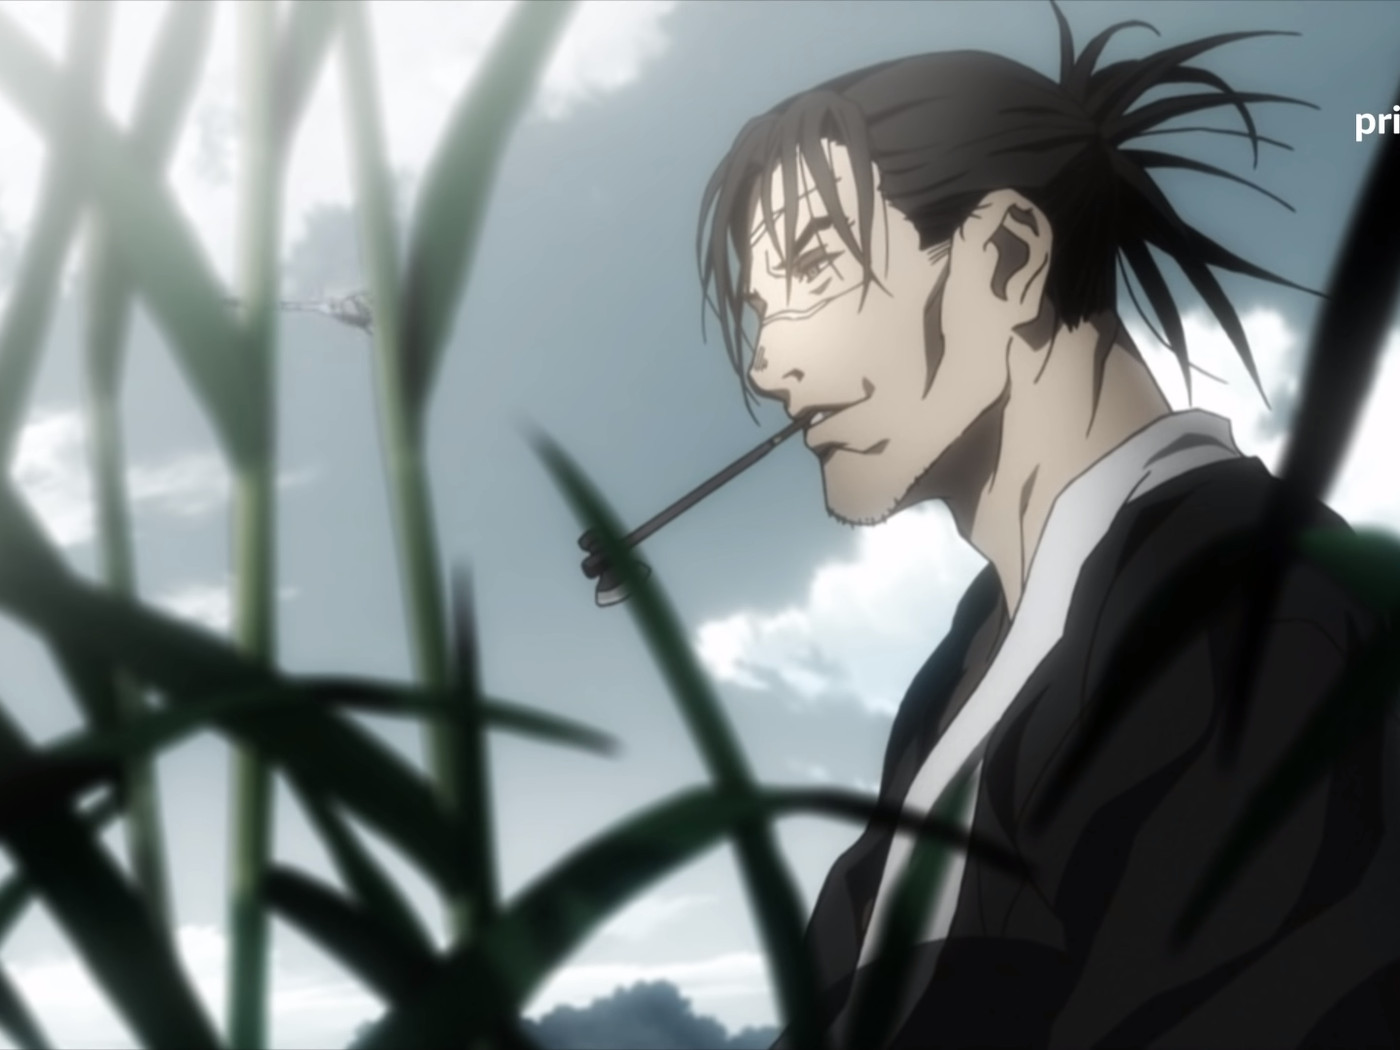 Amazon S Blade Of The Immortal Anime Trailer Is Appropriately Gory Polygon